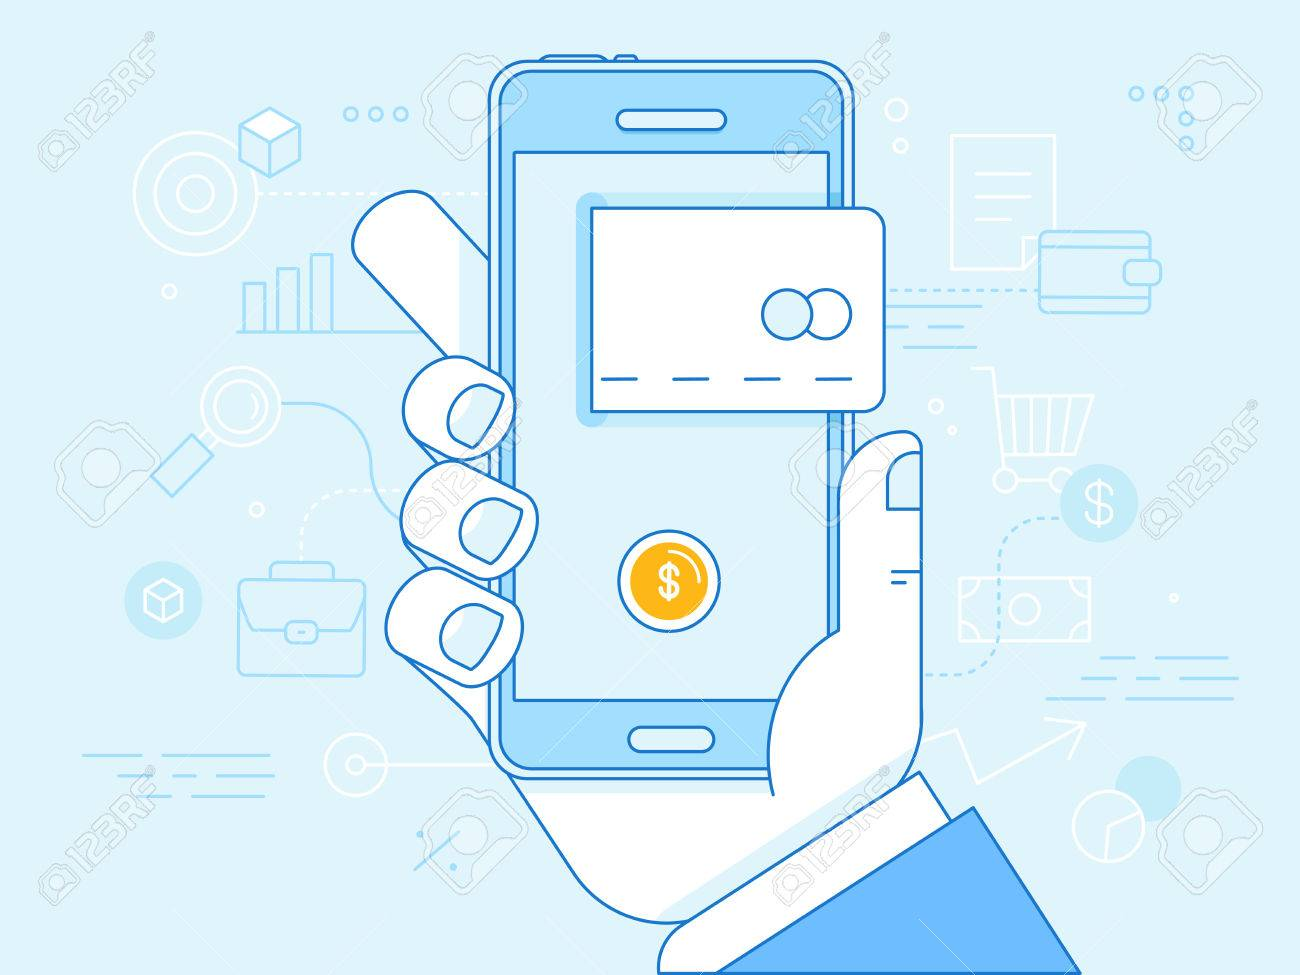 Vector flat linear illustration in blue colors - online mobile payment concept - hand holding mobile phone with credit card icon on the touchscreen - 53041756